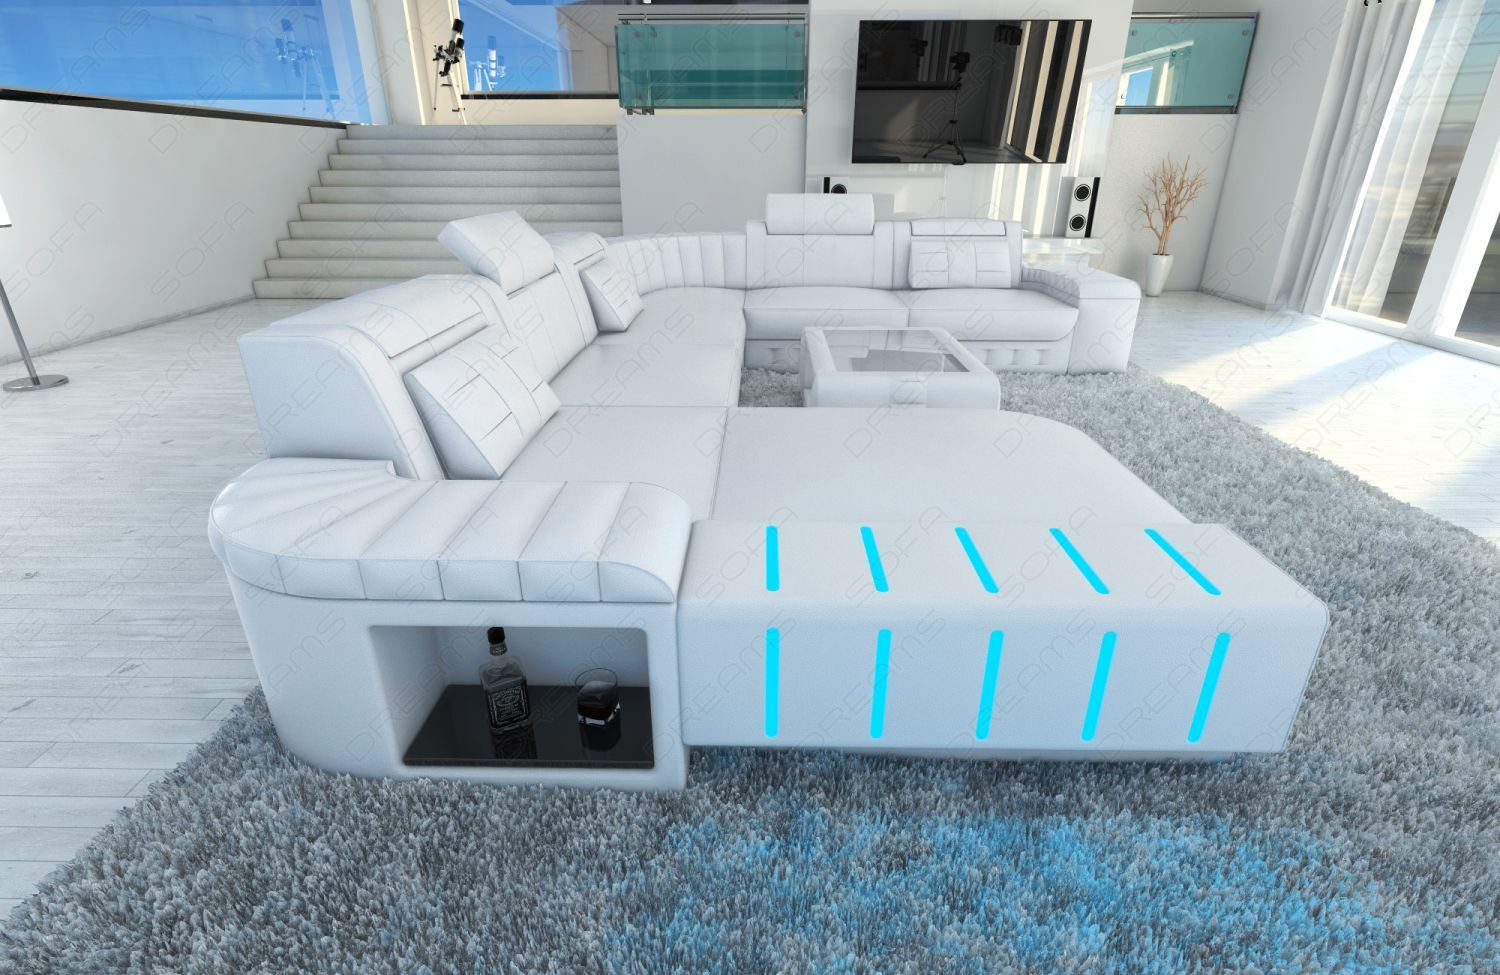 wohnlandschaft bellagio xxl u form designer couch weiss ottomane led beleuchtung ebay. Black Bedroom Furniture Sets. Home Design Ideas